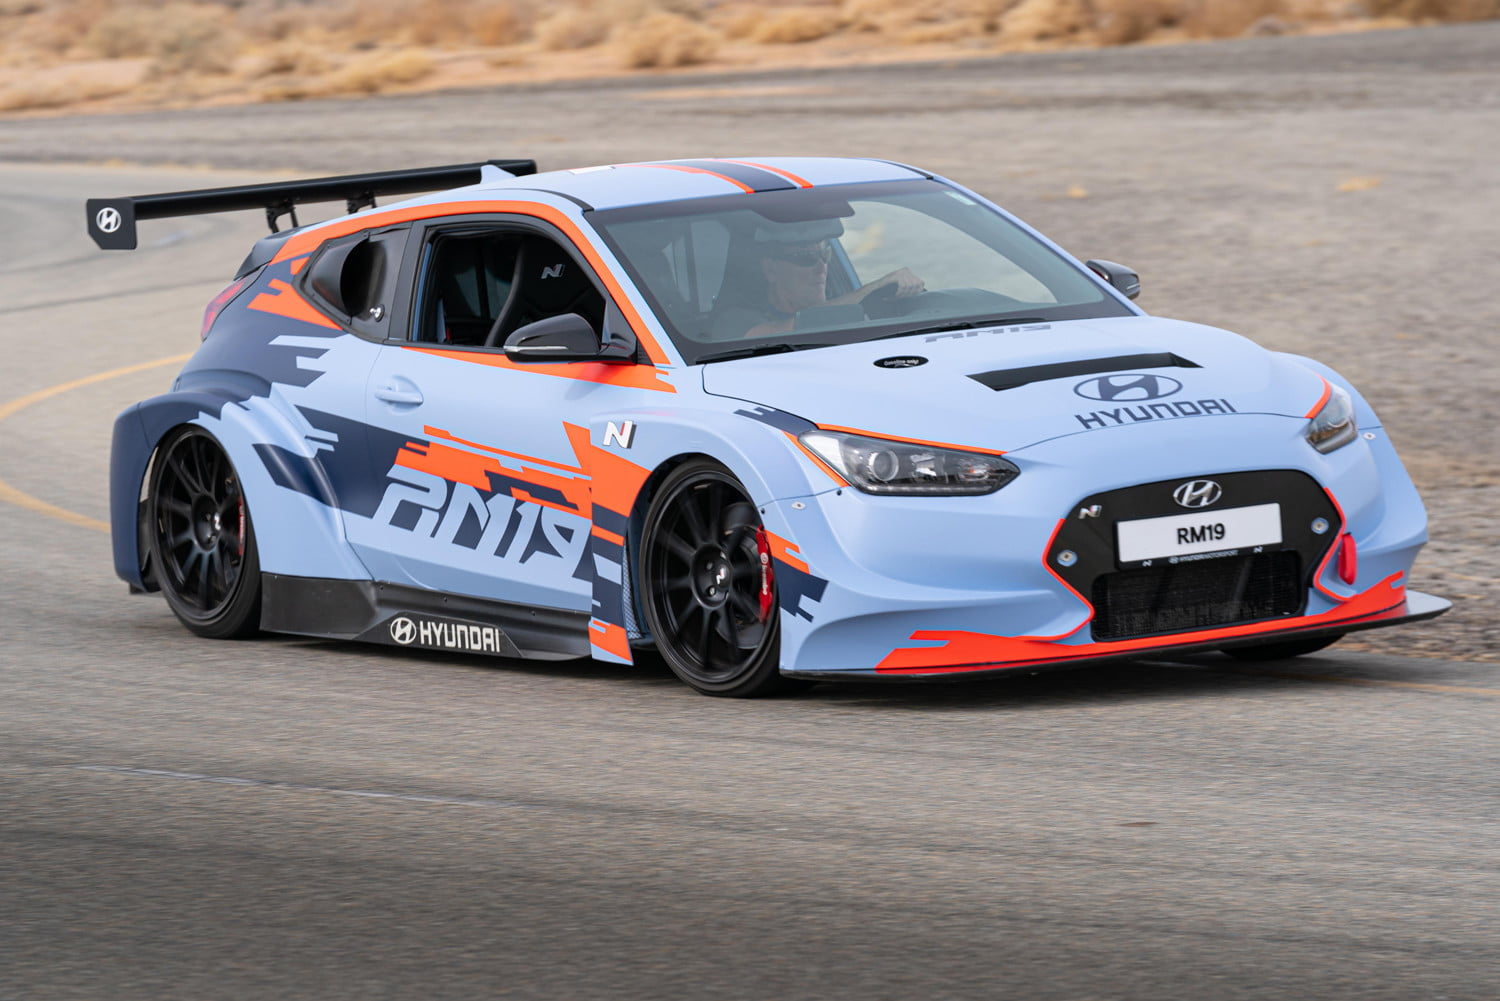 mid engined hyundai rm19 hot hatch unveiled at los angeles auto show 1